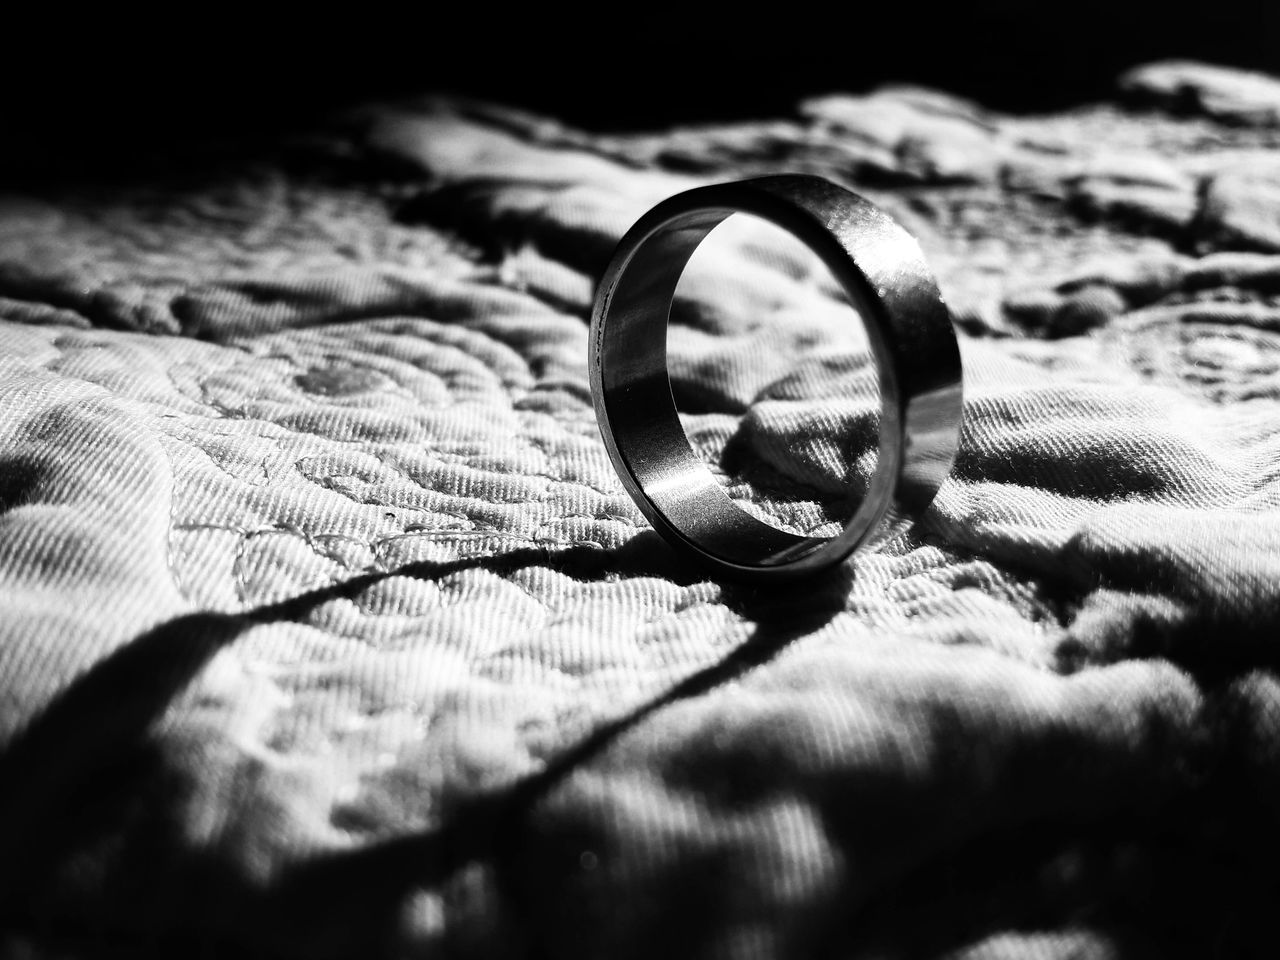 ' Mom gave this a ring to me before she died. It may seem worthless, but for me it's very valuable ' Story From Photo Monochrome Light And Shadows Black And White